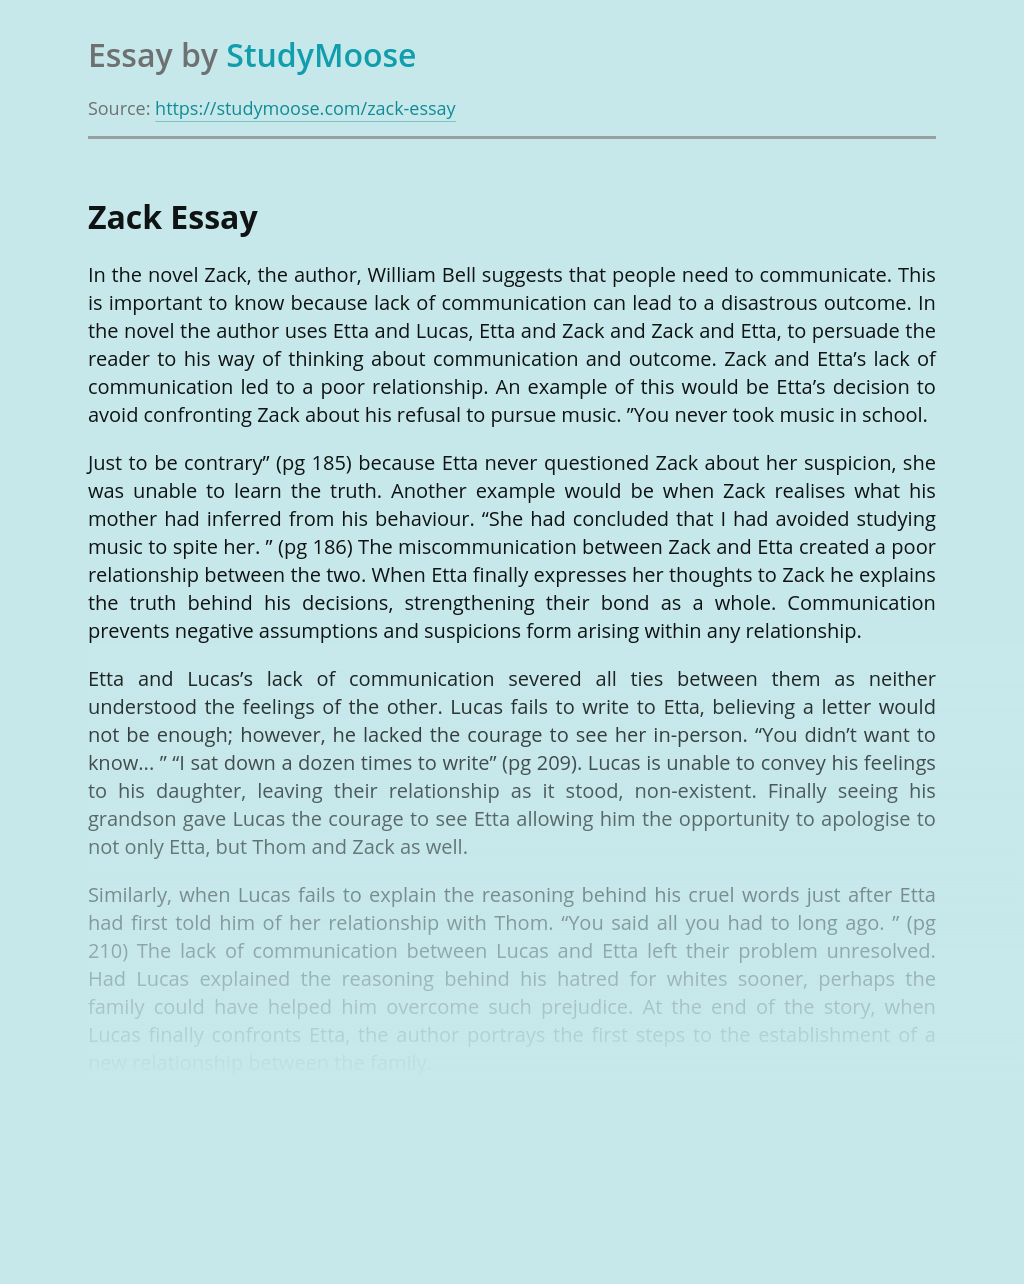 The Importance of Communication in the novel 'Zack' by William Bell